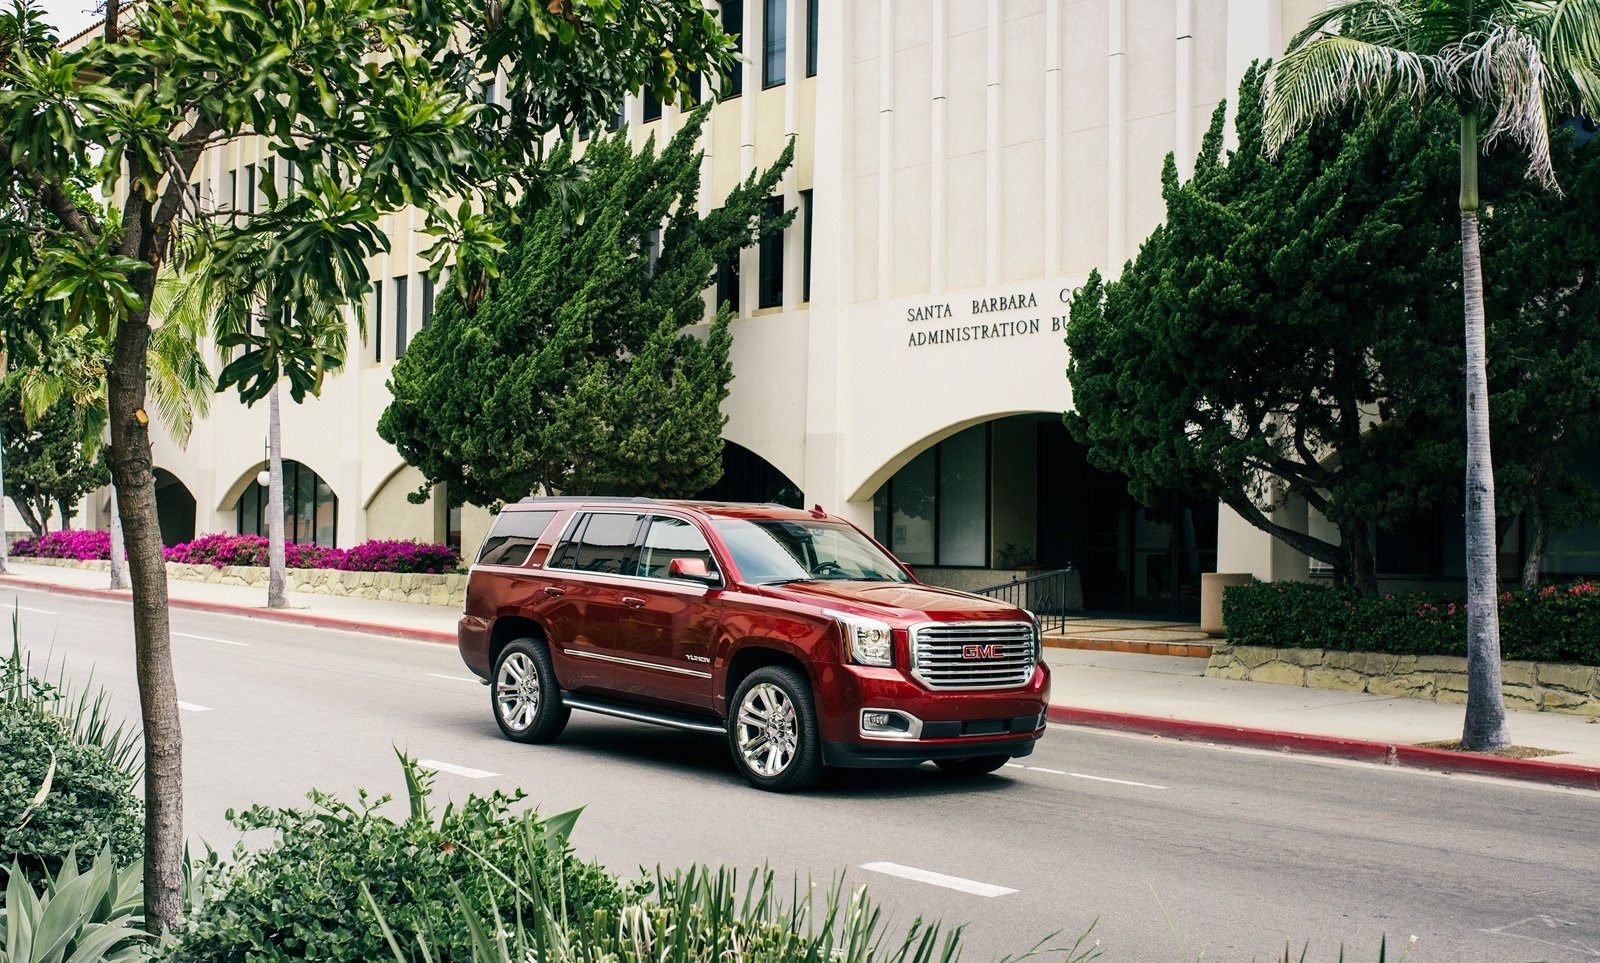 The gmc yukon makes an appearance with 3 percent of its cars having traveled beyond 200 000 miles while pickup trucks help out around job sites